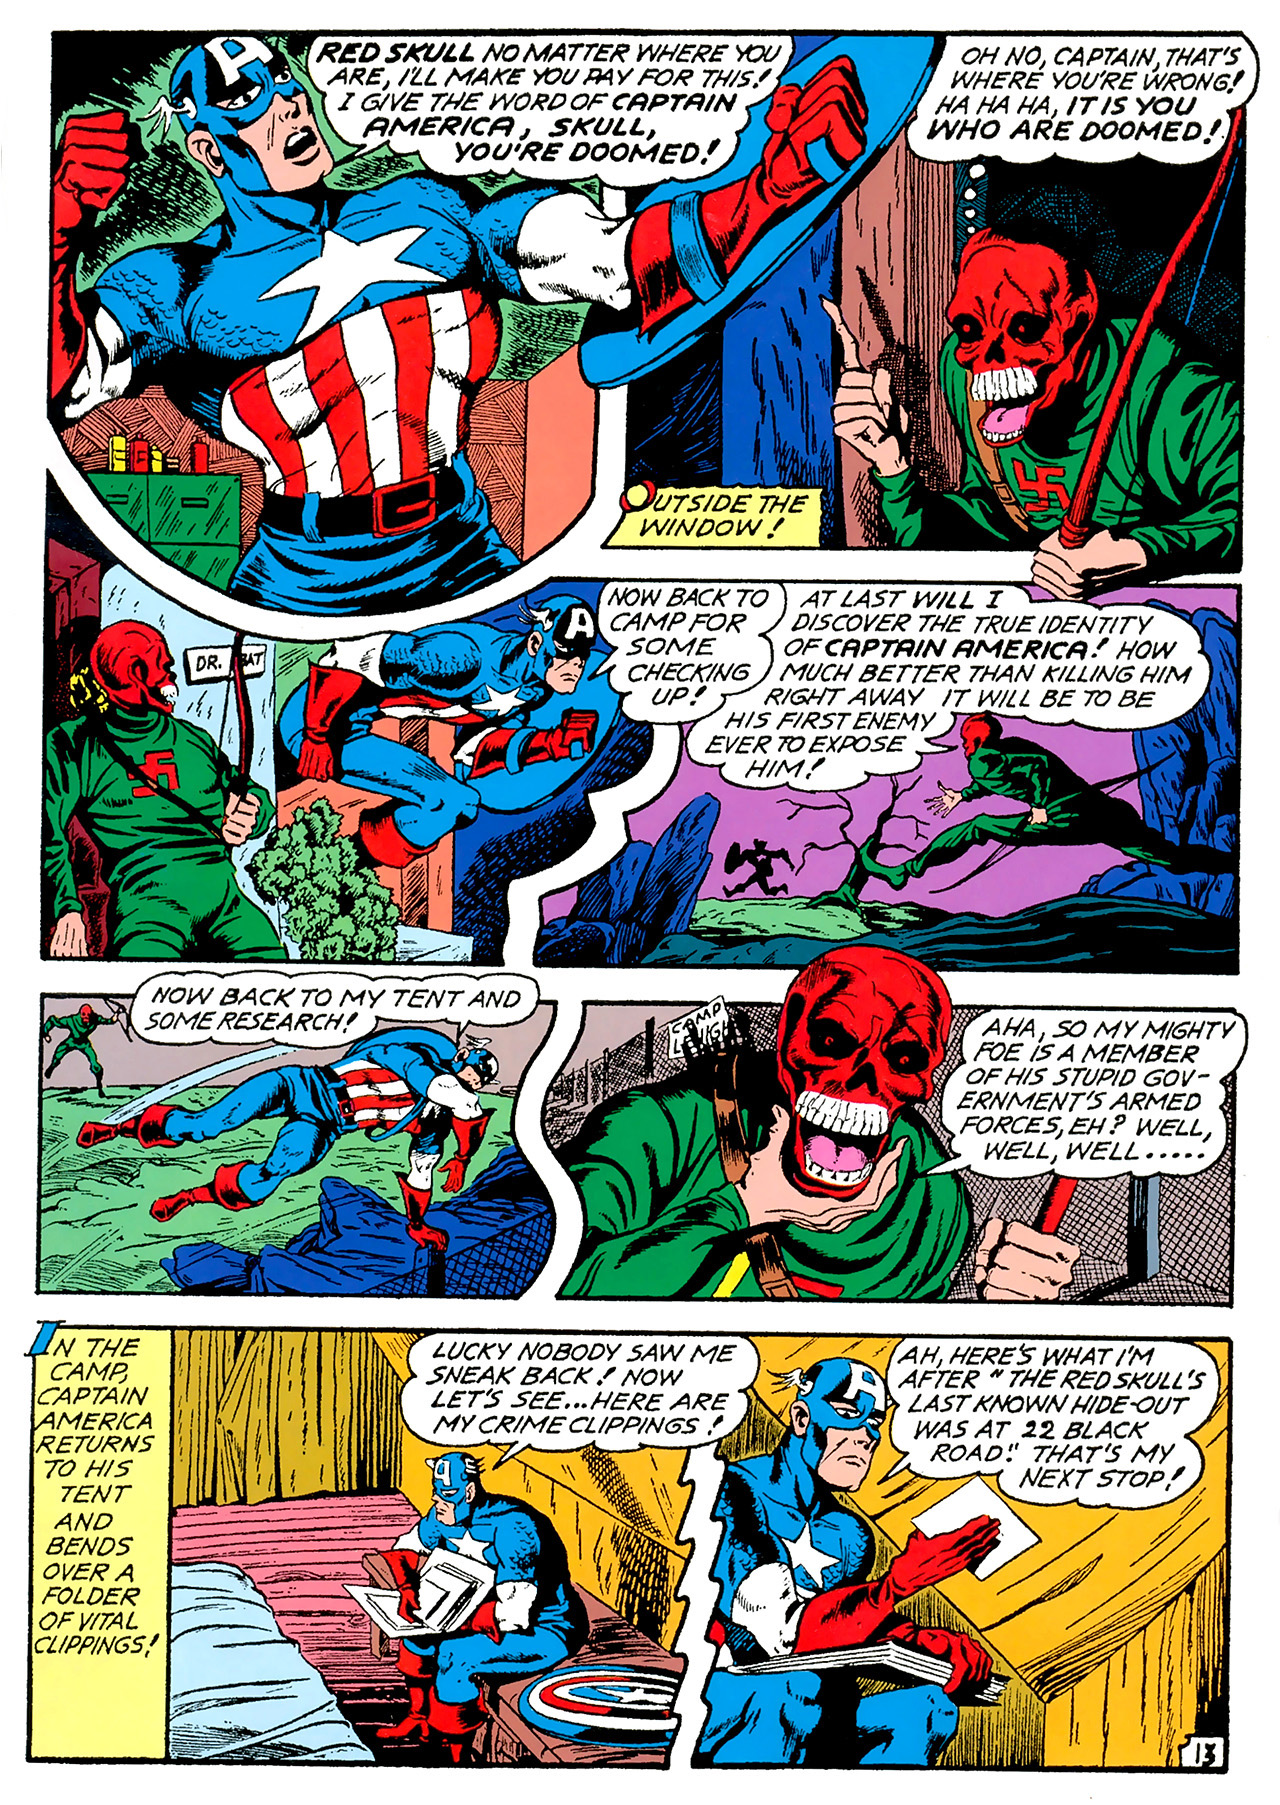 Captain America (1968) 600 Page 79